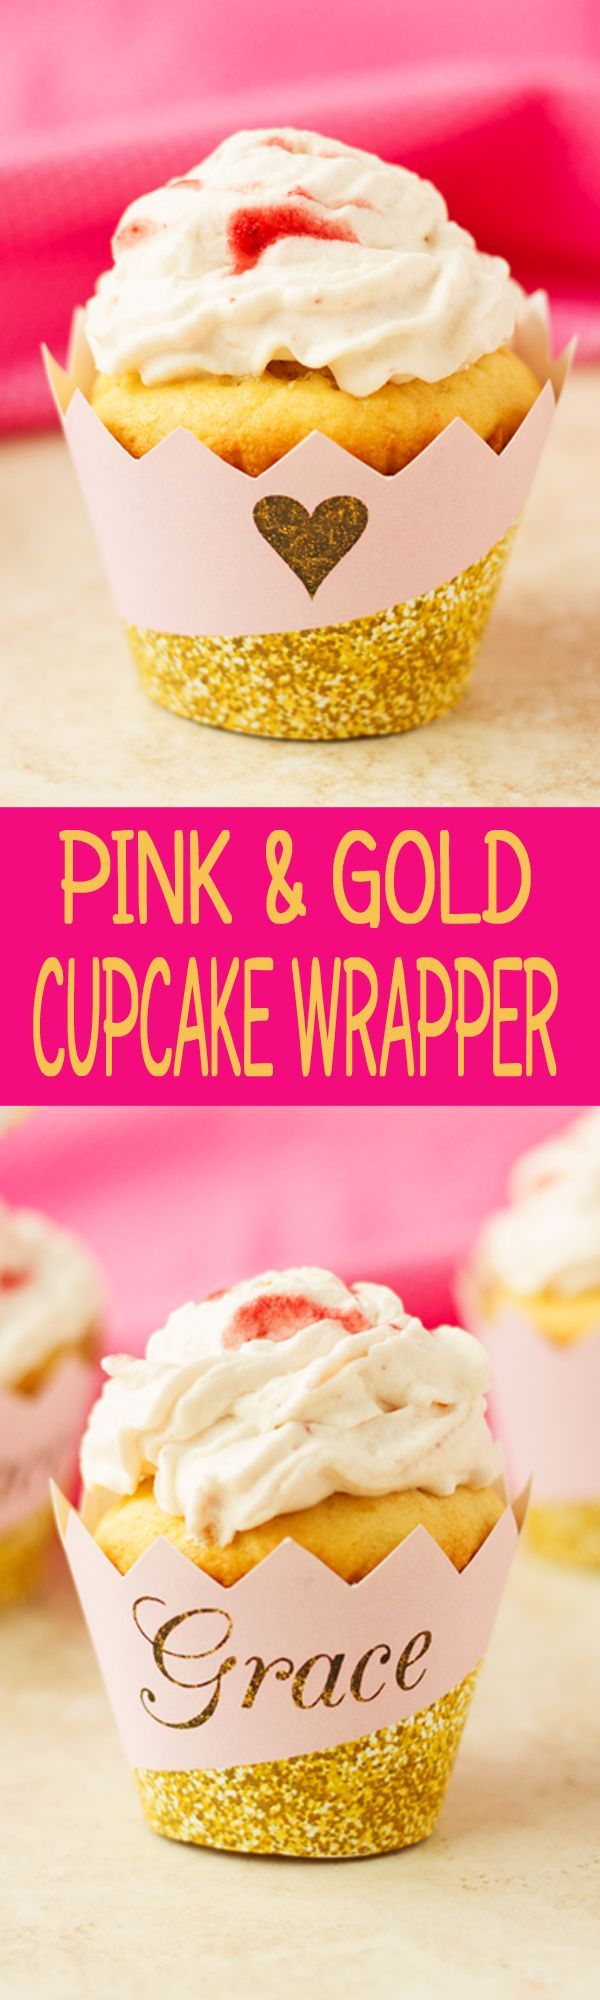 Pink and Gold Cupcake Wrapper - Gold Cupcake Wrapper - Pink and Gold Cupcake Liner - Personalized Cupcake Wrappers by Ilona's Design on Etsy I /ilonaspassion/